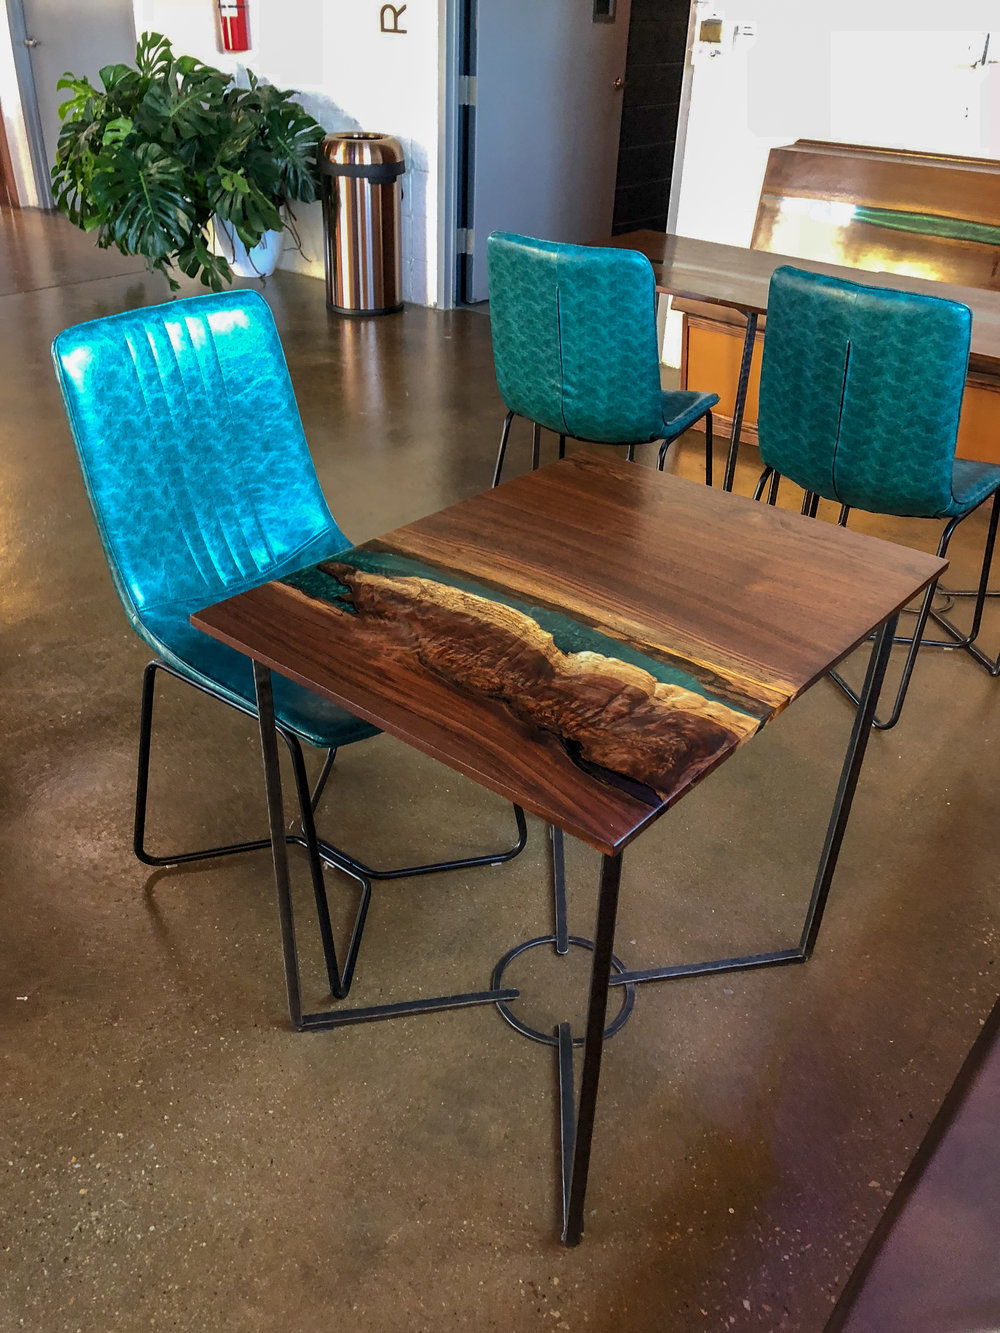 River Table Live Edge Tabol brewing Sallie Plumley Studio Richmond Virginia Sally Plumley Custom Woodworking and Furniture Design